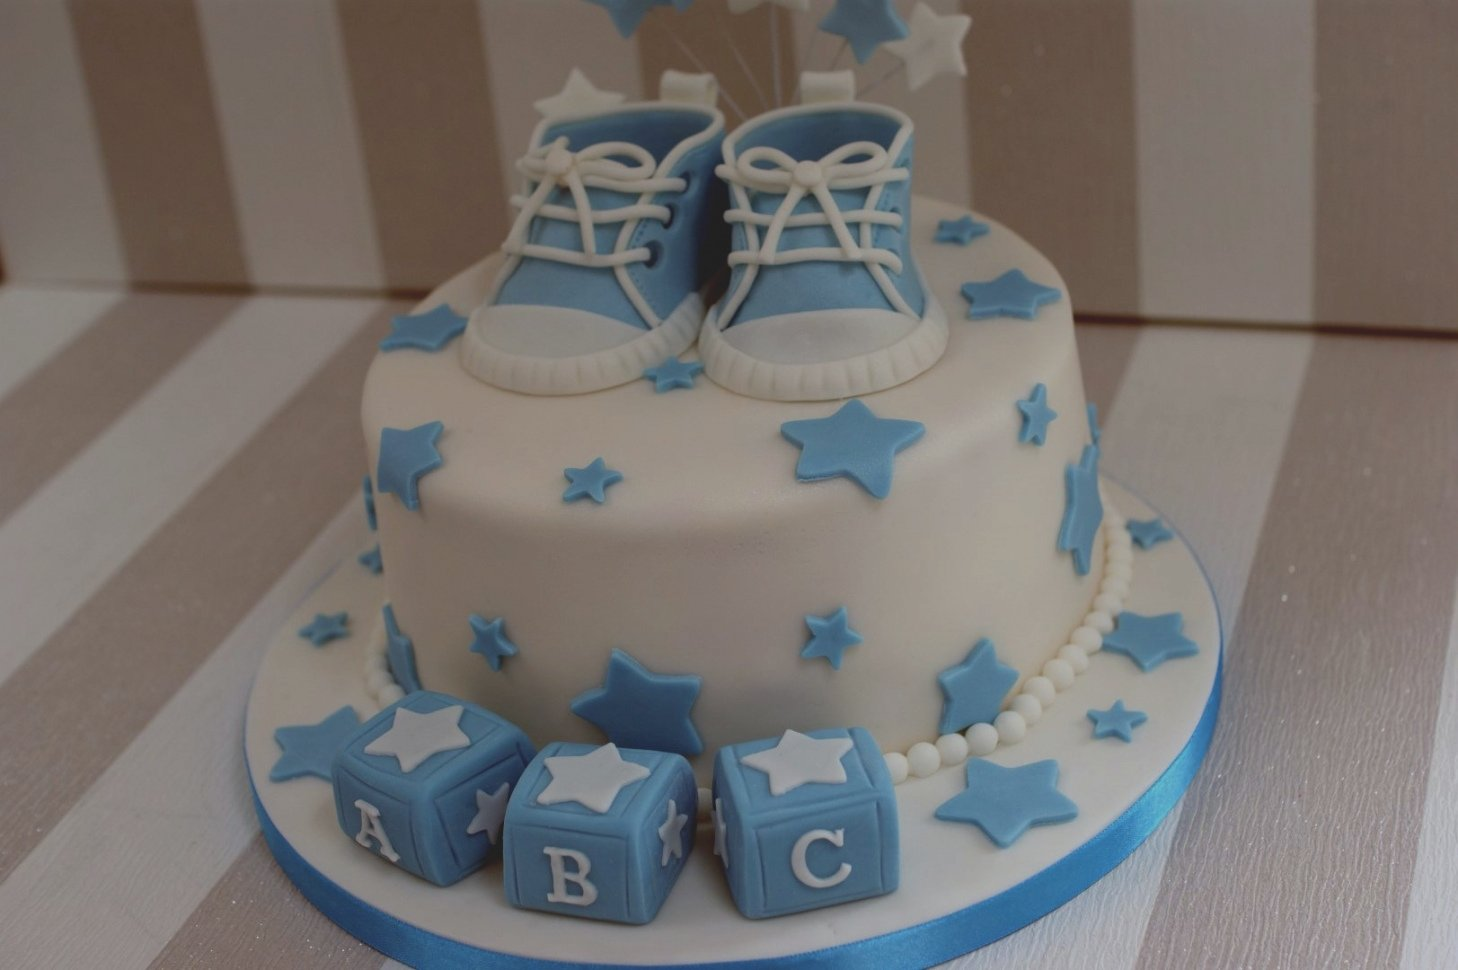 10 Amazing Baby Shower Boy Cake Ideas trend boy baby shower cake ideas 70 baby shower cakes and cupcakes 2020